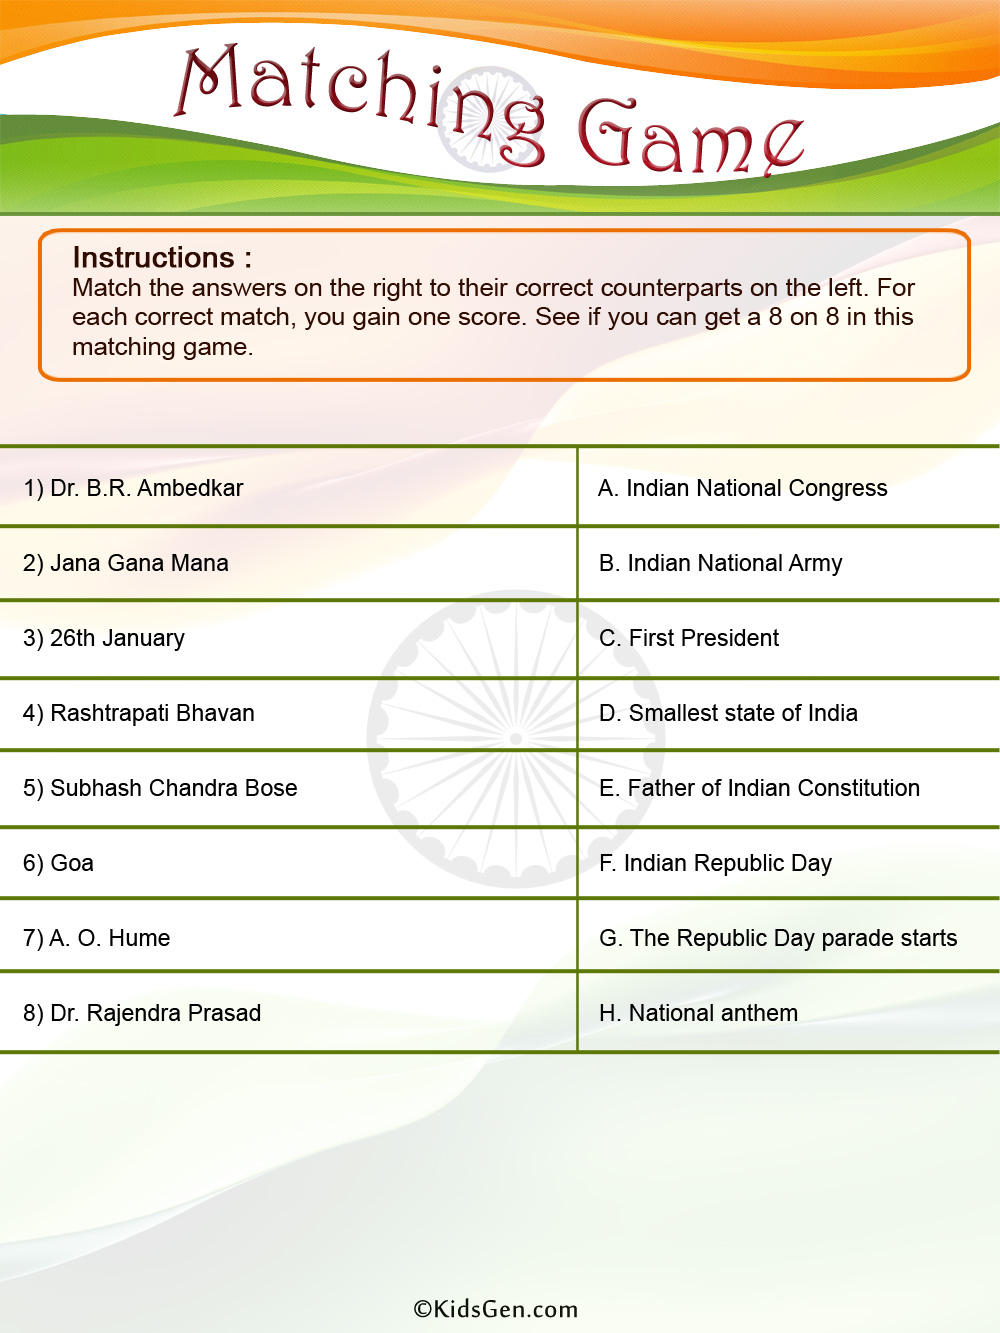 Matching Images >> Indian Republic Day Colored Matching Game template